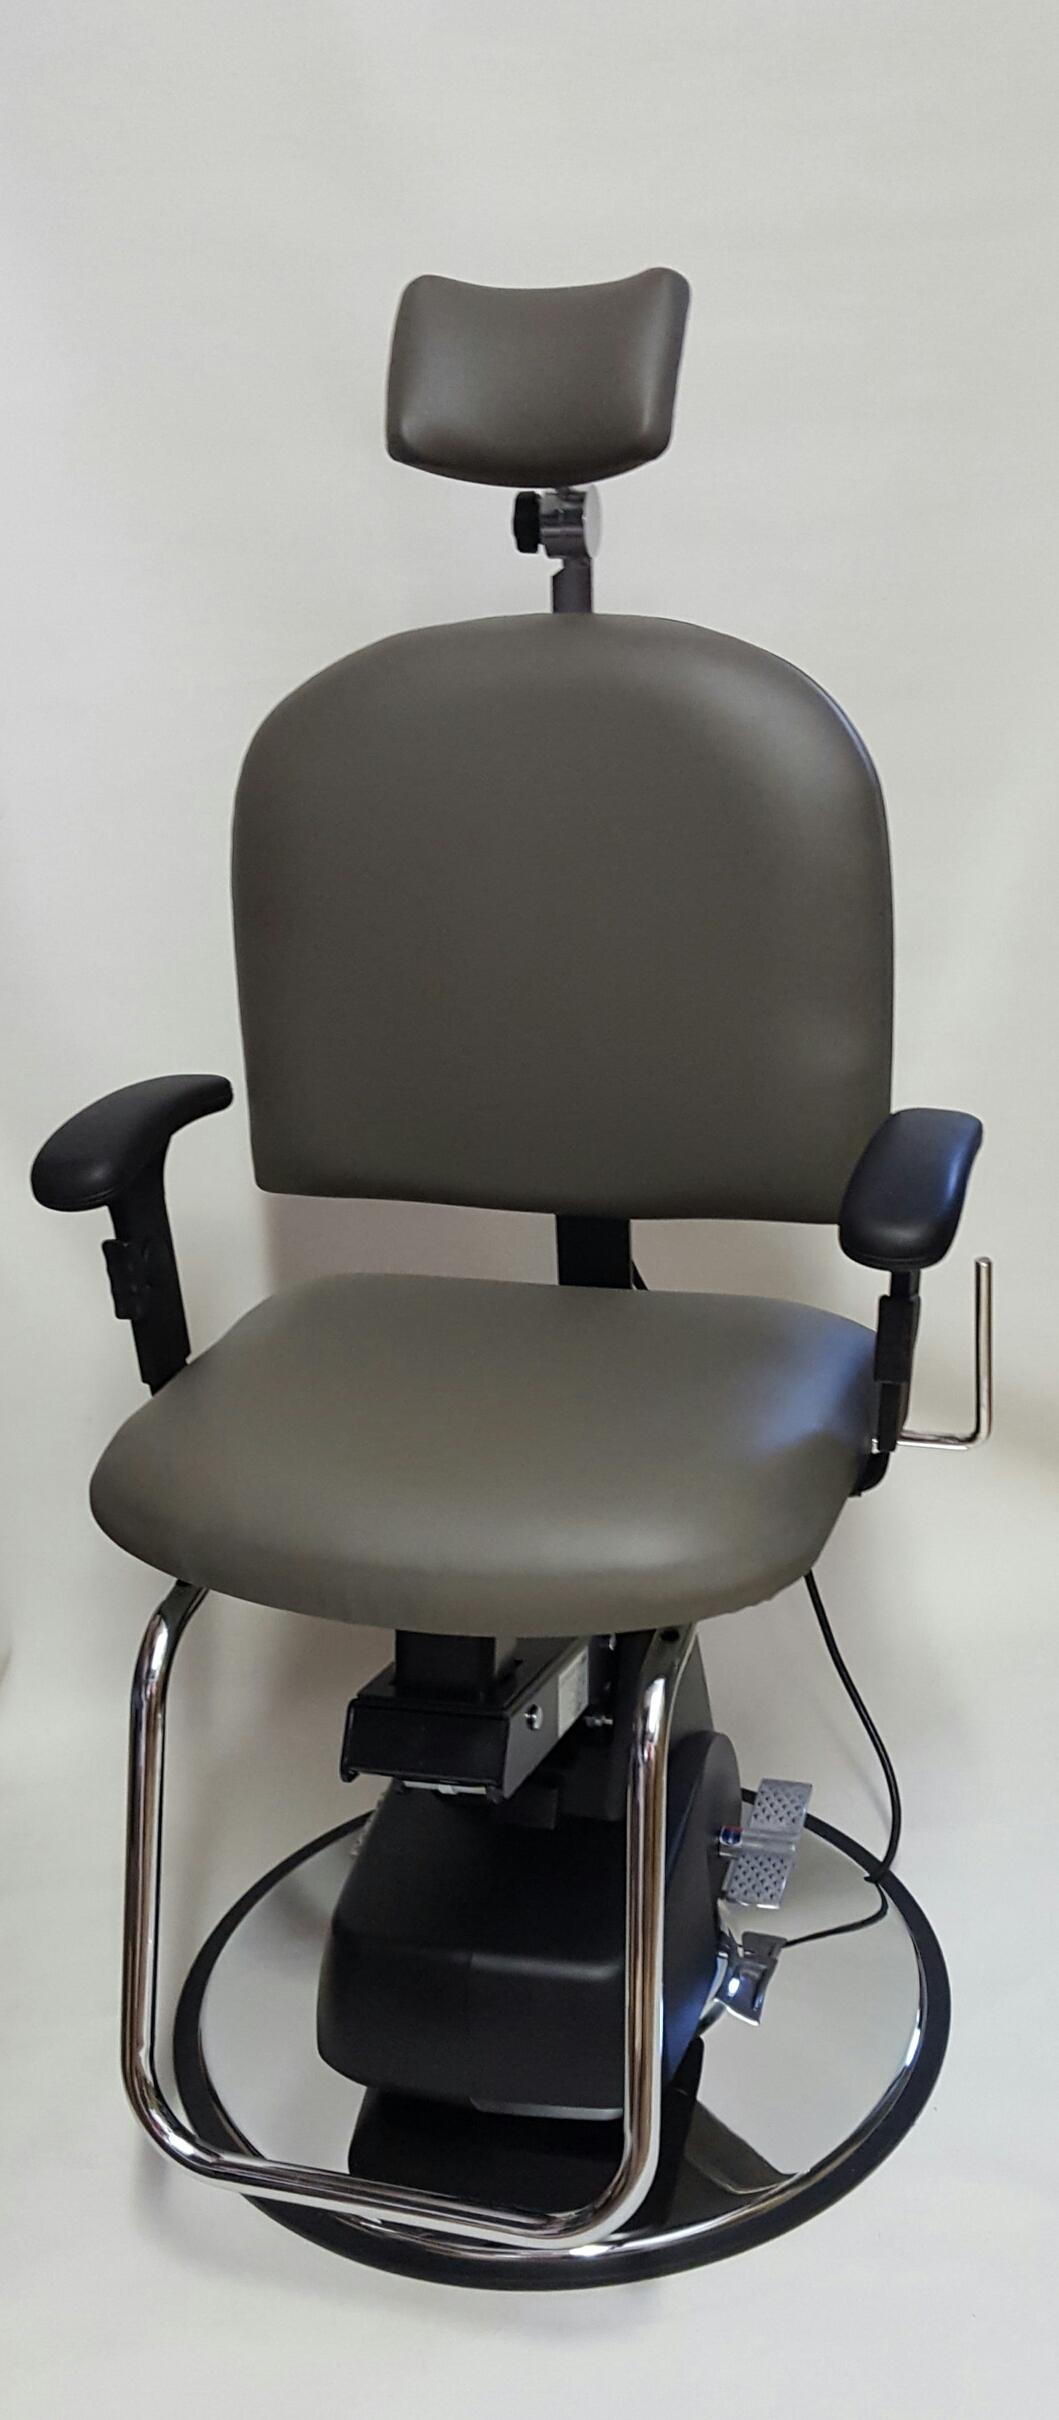 Brandt Industries Chairs Treatment Motorized Reclining Treatment Chair